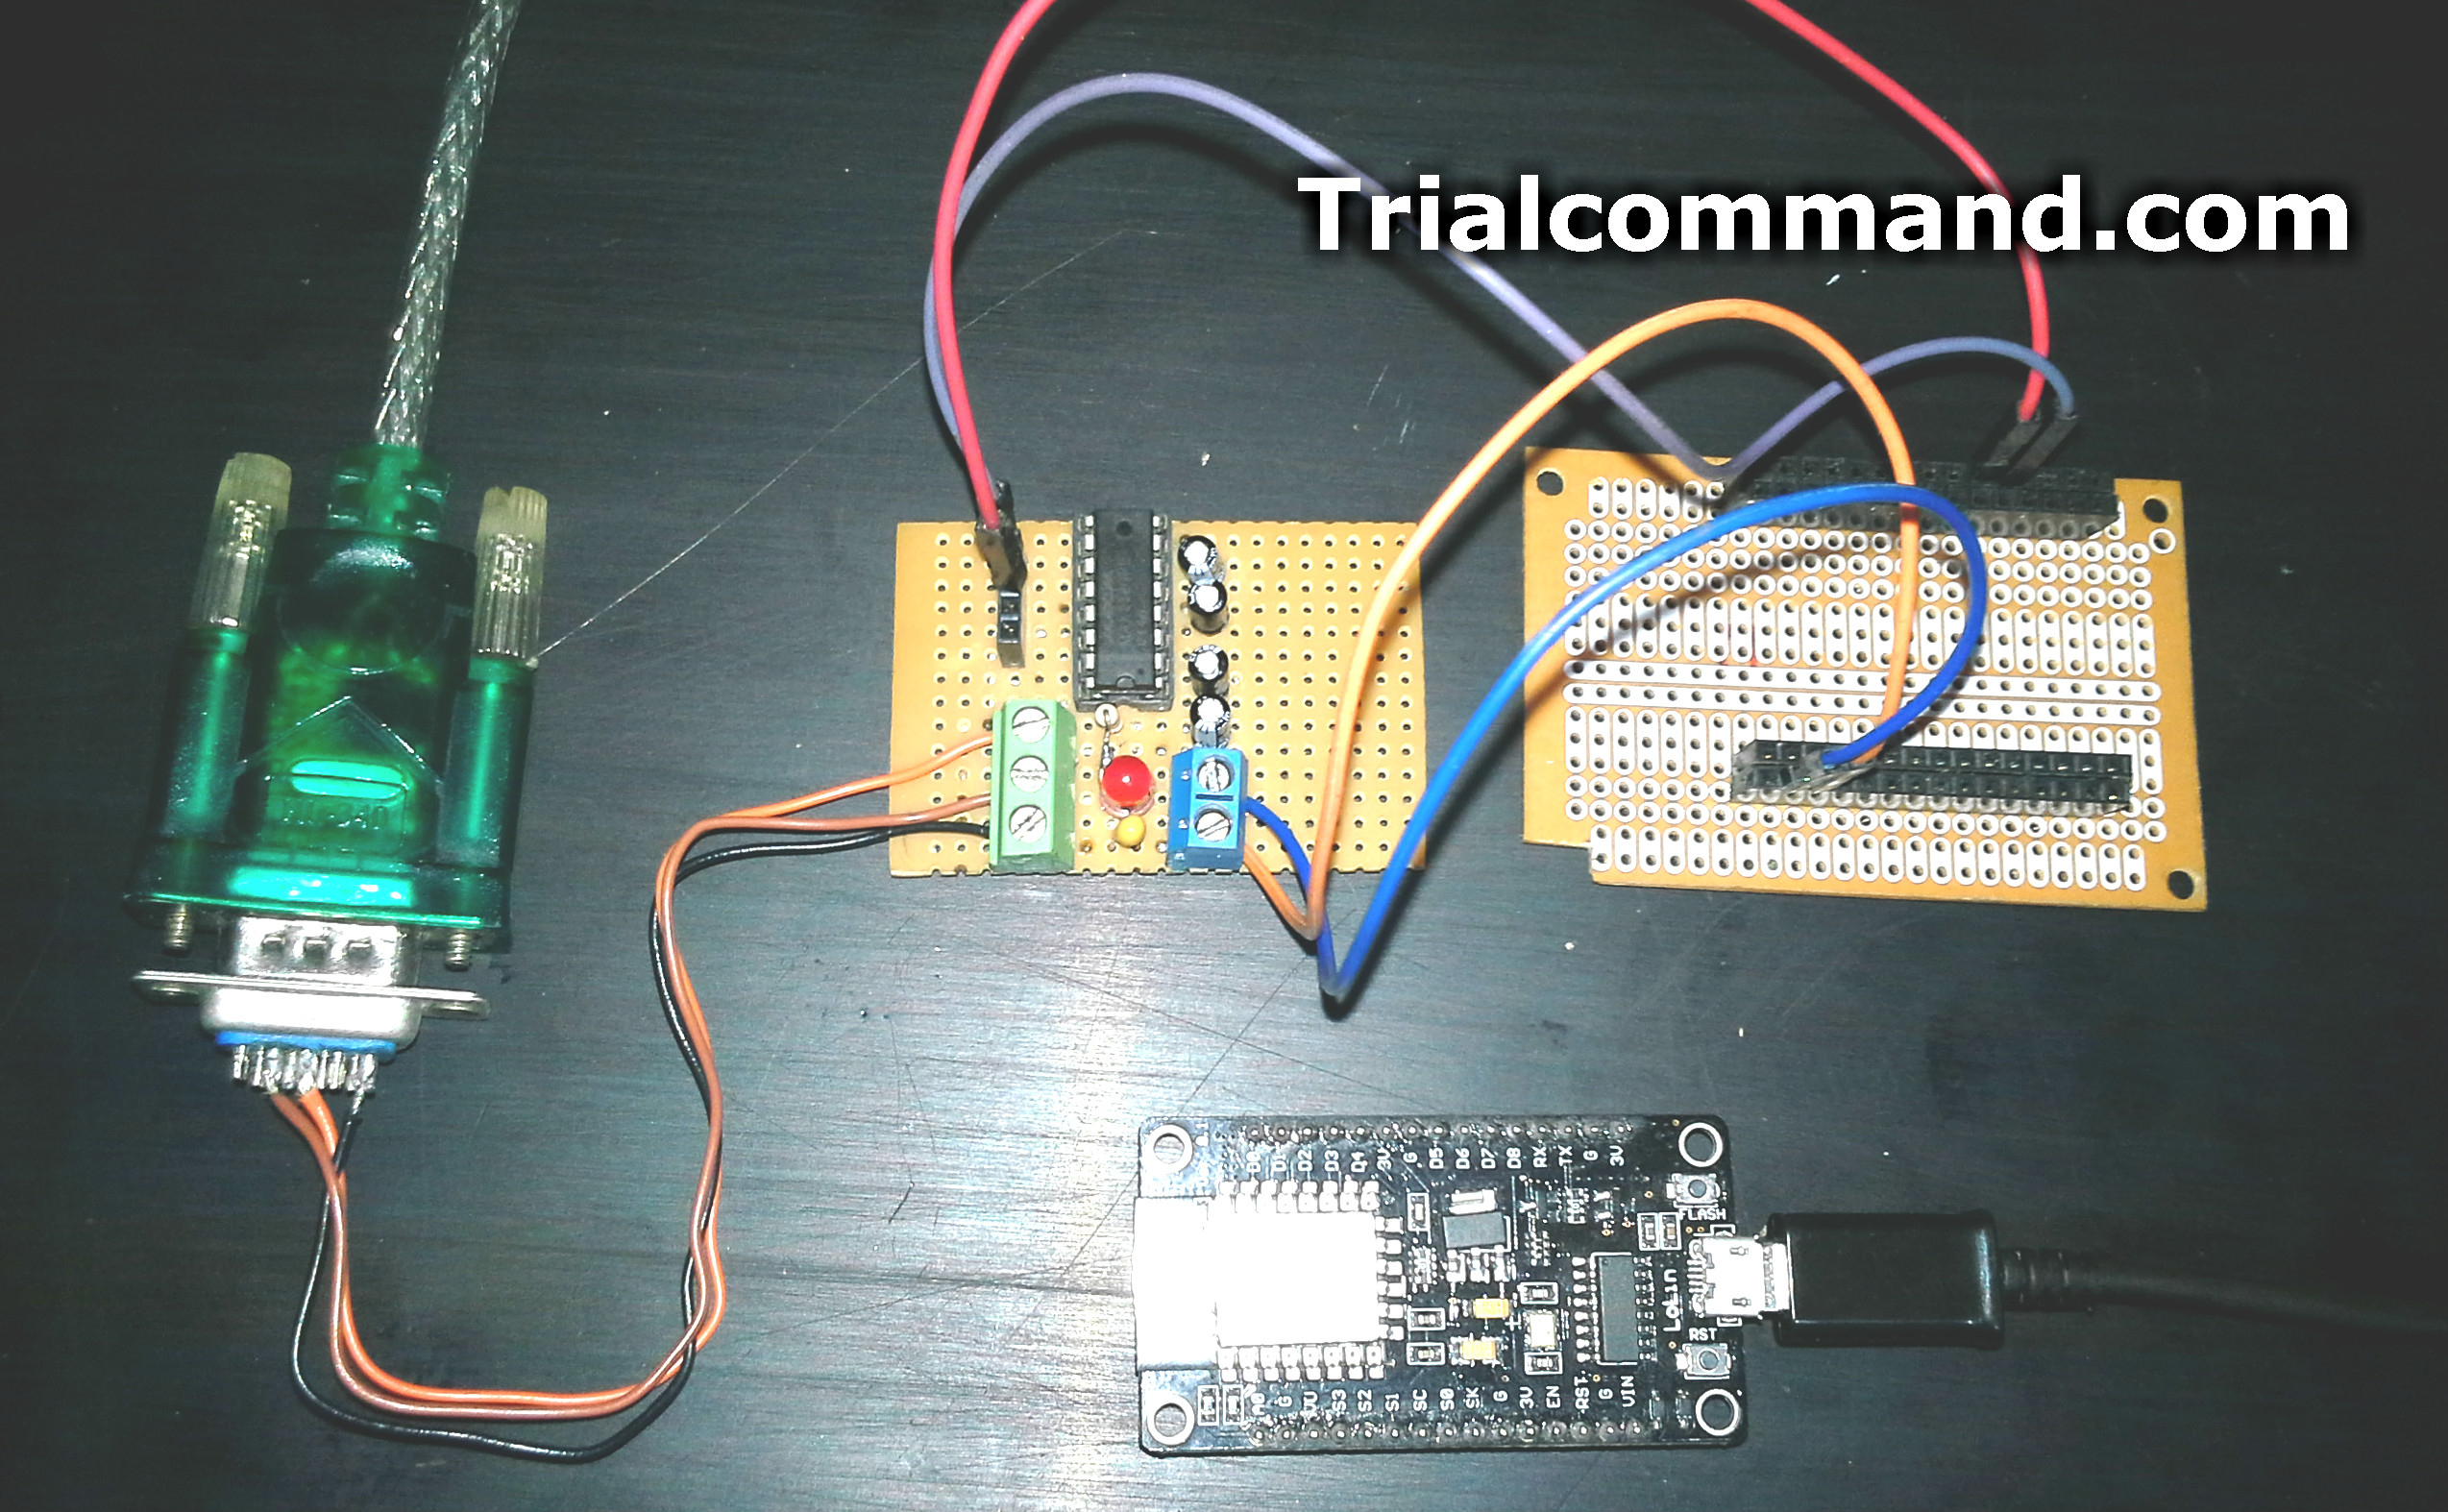 Esp8266 Slave Modbus Rtu Rs232 Trialcommand Ttl To Converter By Max232 Of Voltages 5v Although This Is Sold Normally We Have Decided Assemble It Diy So As Not Lose The Tradition